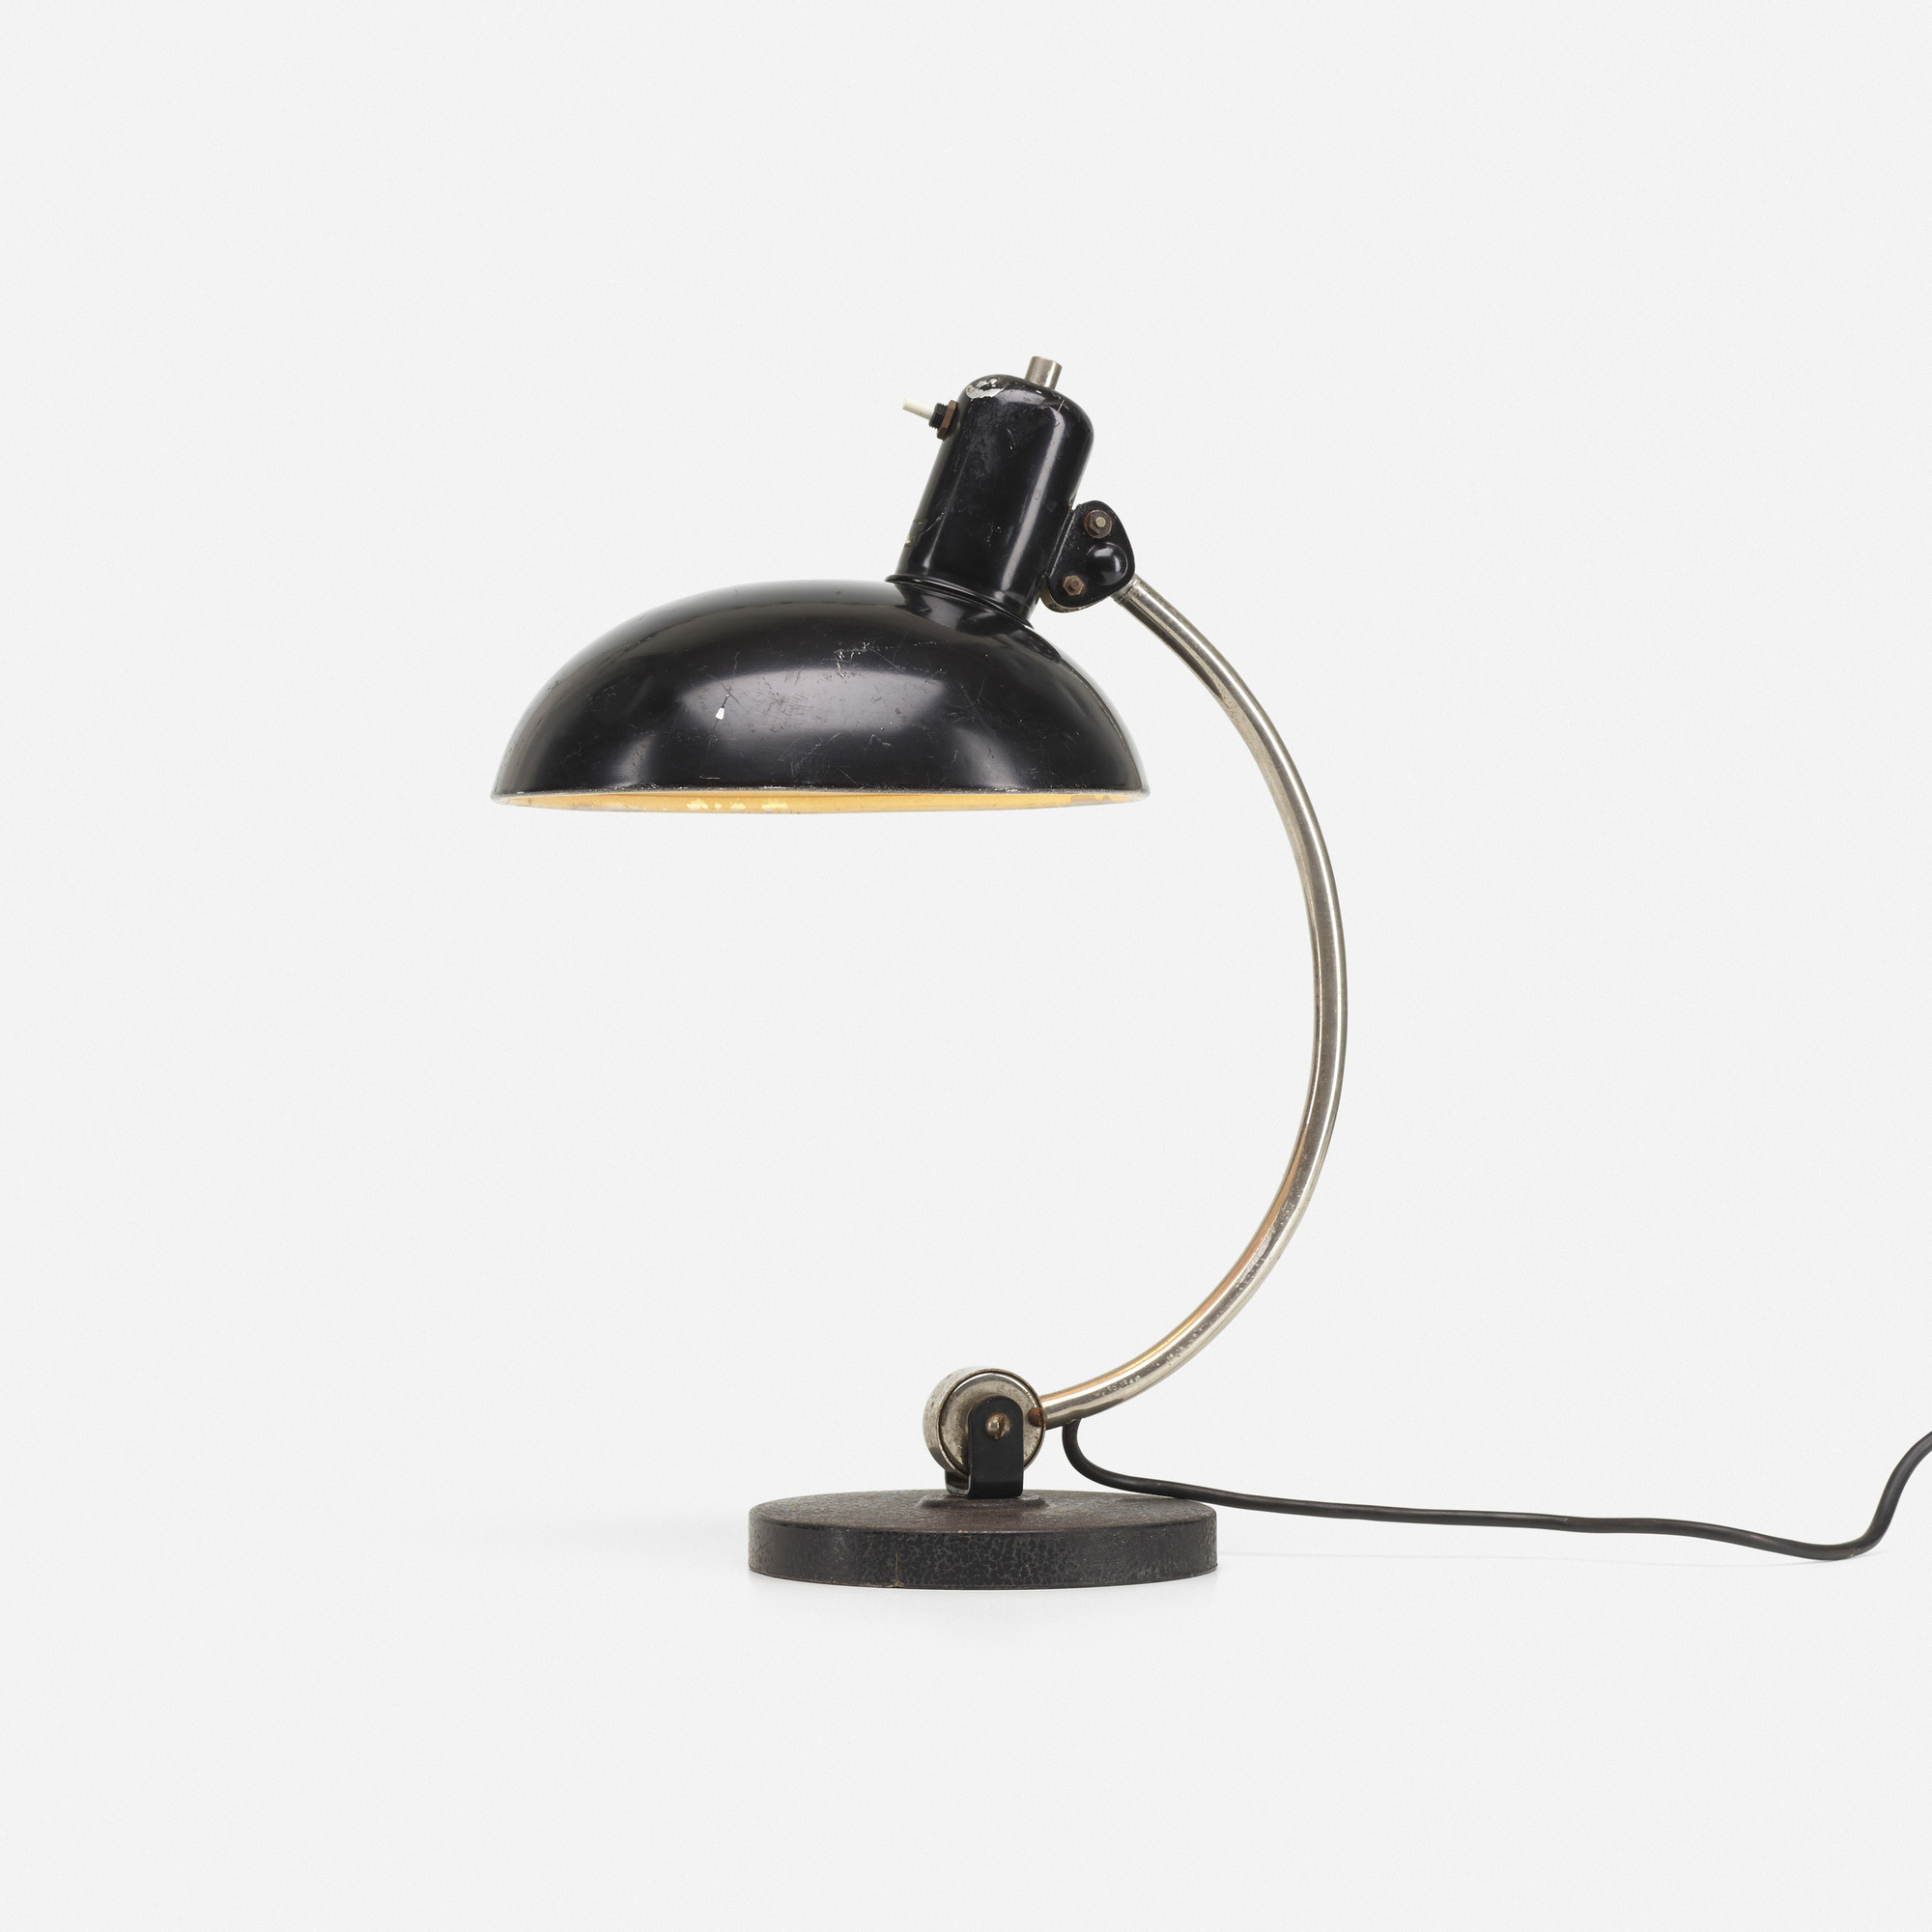 156: Swiss / table lamp (1 of 2)